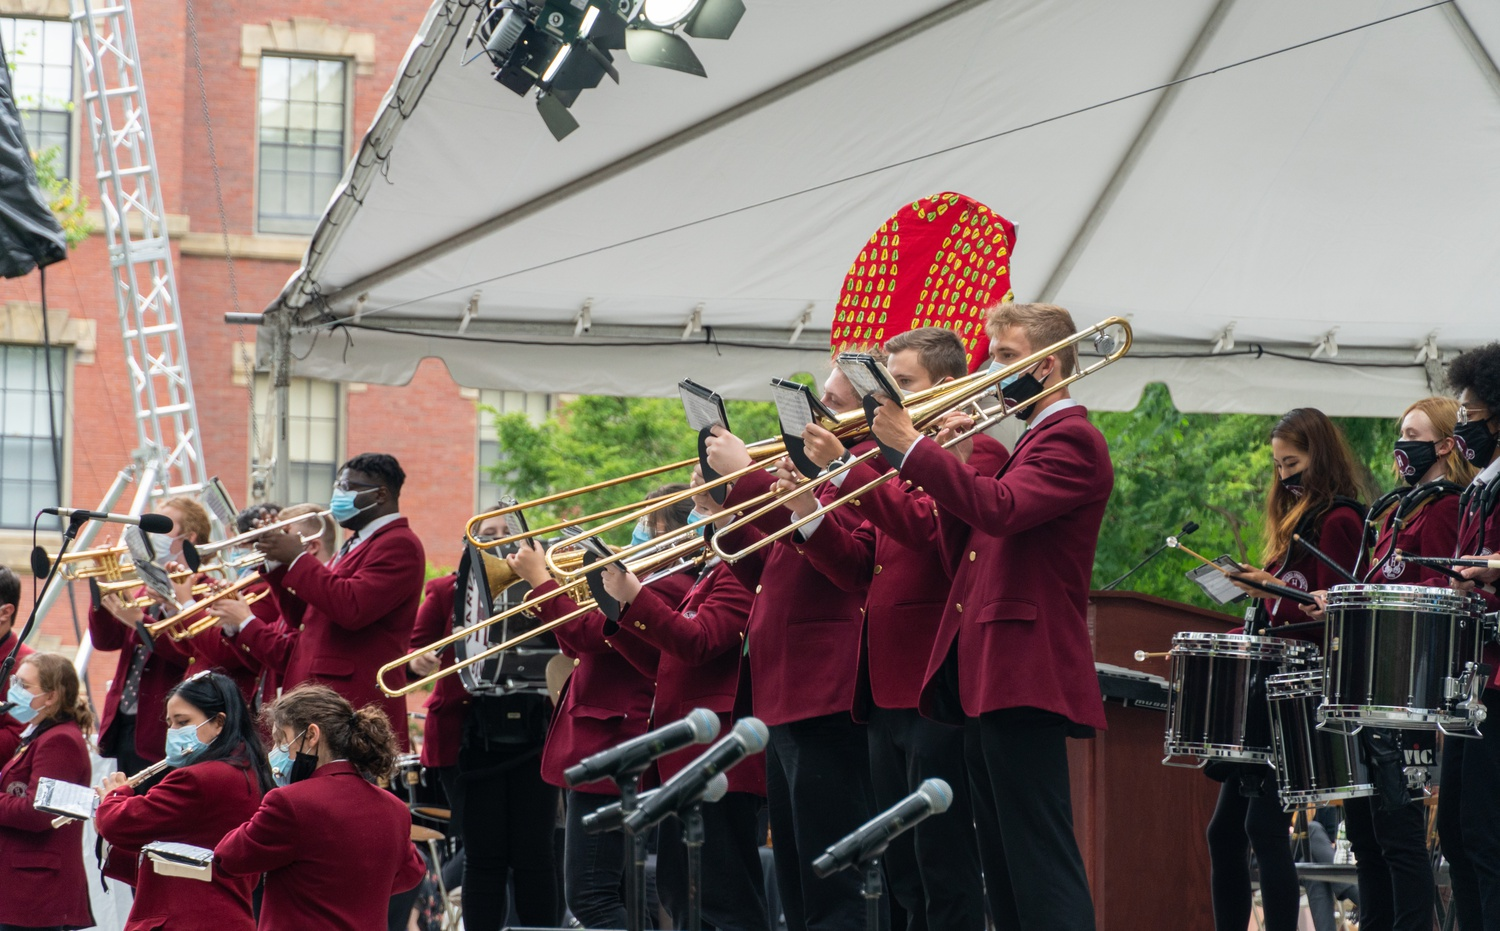 The Harvard University Band plays on the steps of Memorial Church in Tercentenary Theatre during Convocation on Aug. 31.